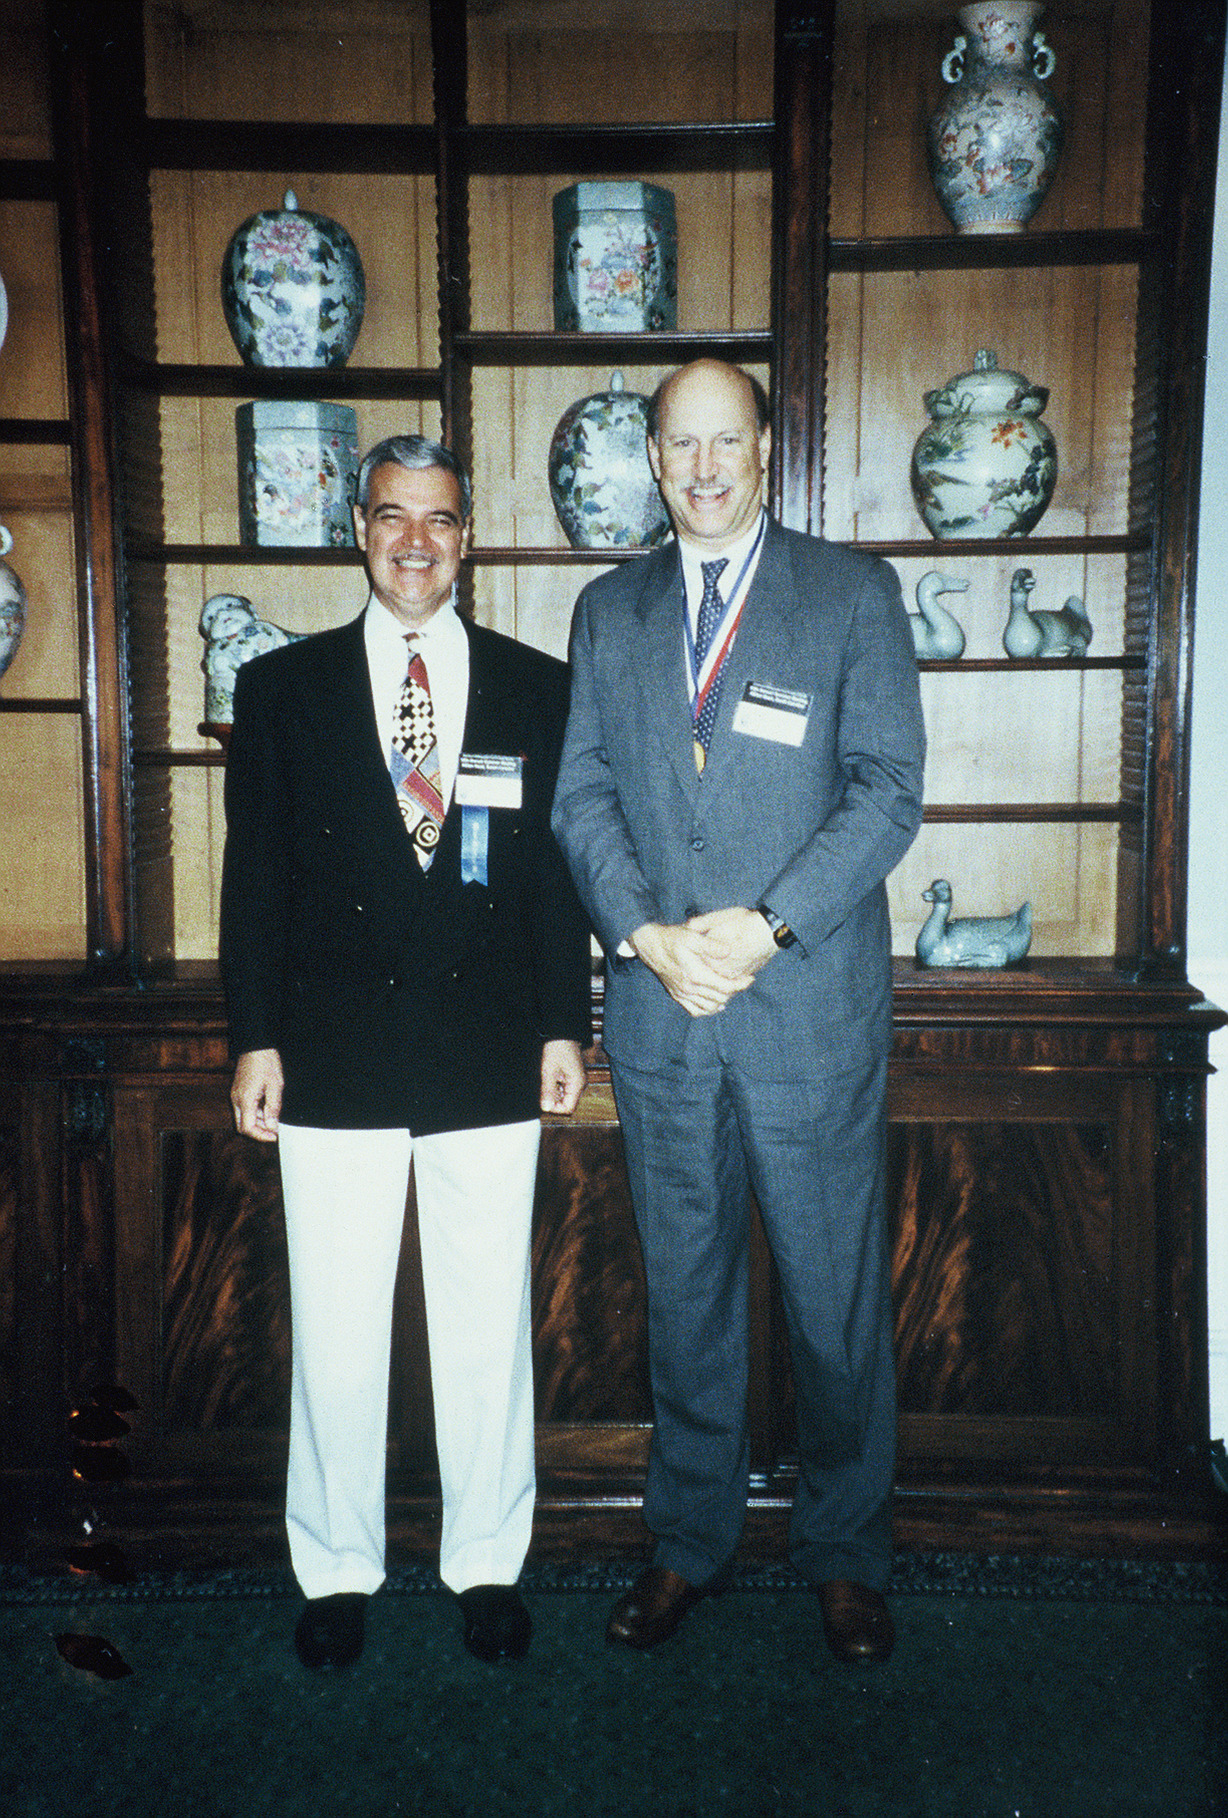 AOFAS Past Presidents G. James Sammarco, MD, and Donald Baxter, MD - Summer 1996